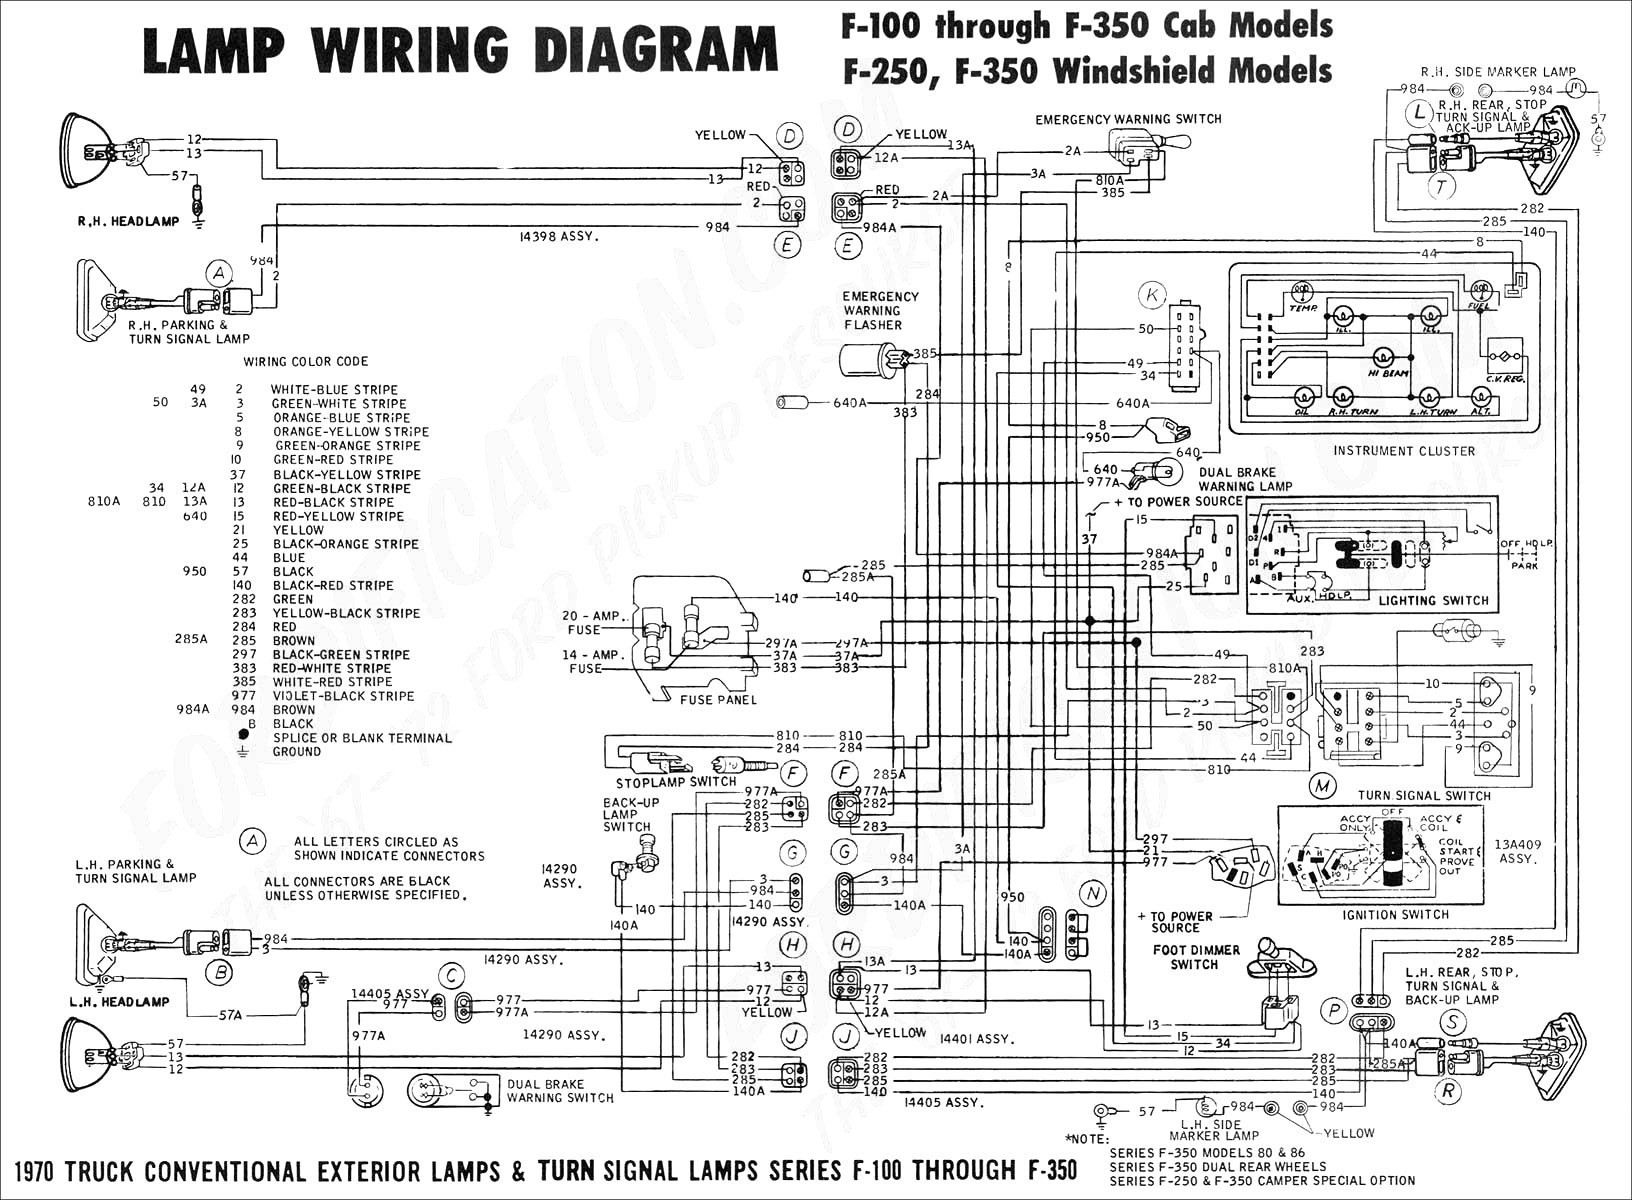 Trailer Light Wiring Diagram 7 Way ford Alternator Wiring Harness Of Trailer Light Wiring Diagram 7 Way Latest 4 Wire Trailer Wiring Diagram Trailer Light Wiring Diagram